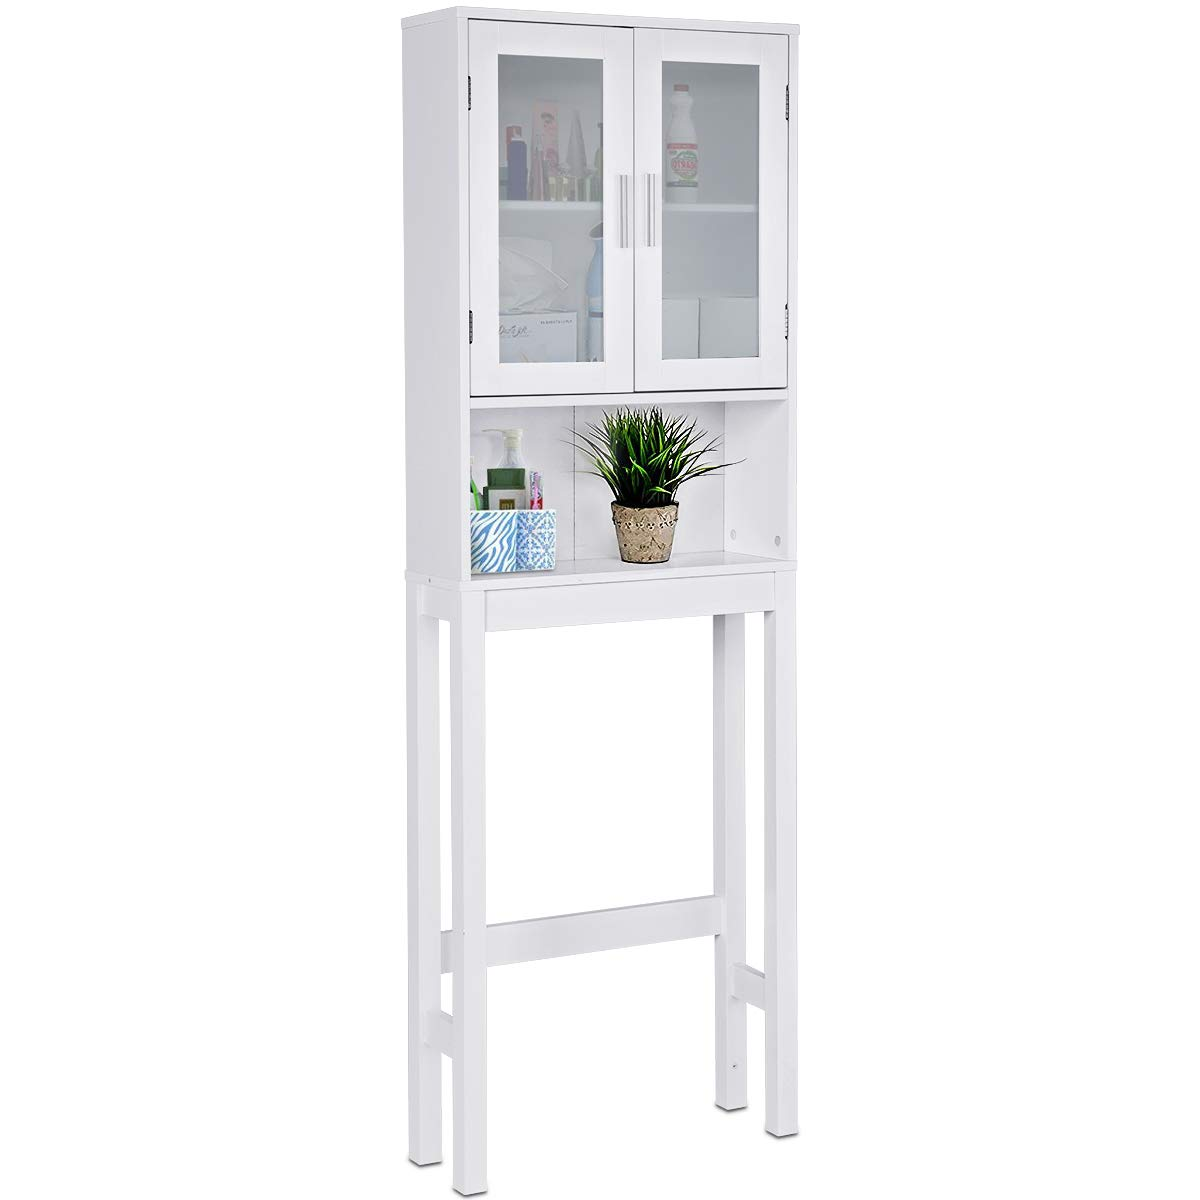 Giantex Over-The-Toilet Bathroom Storage Space Saver with Adjustable Shelf Collect Cabinet, White (2 Glass Door w/Shelf) by Giantex